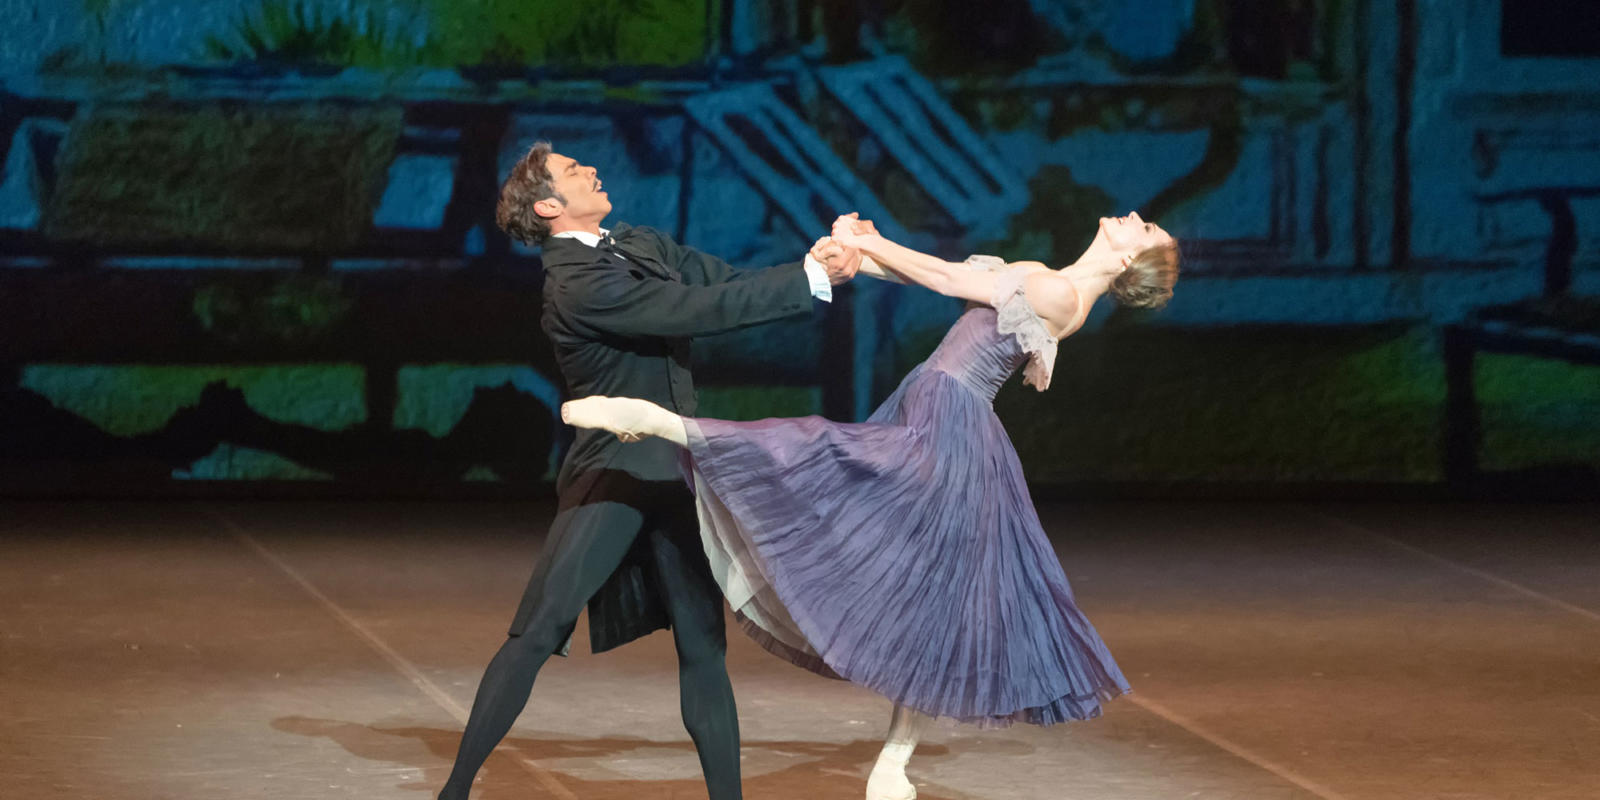 Polina Semionova and Jason Reilly in Onegin. Photo by Marc Haegeman